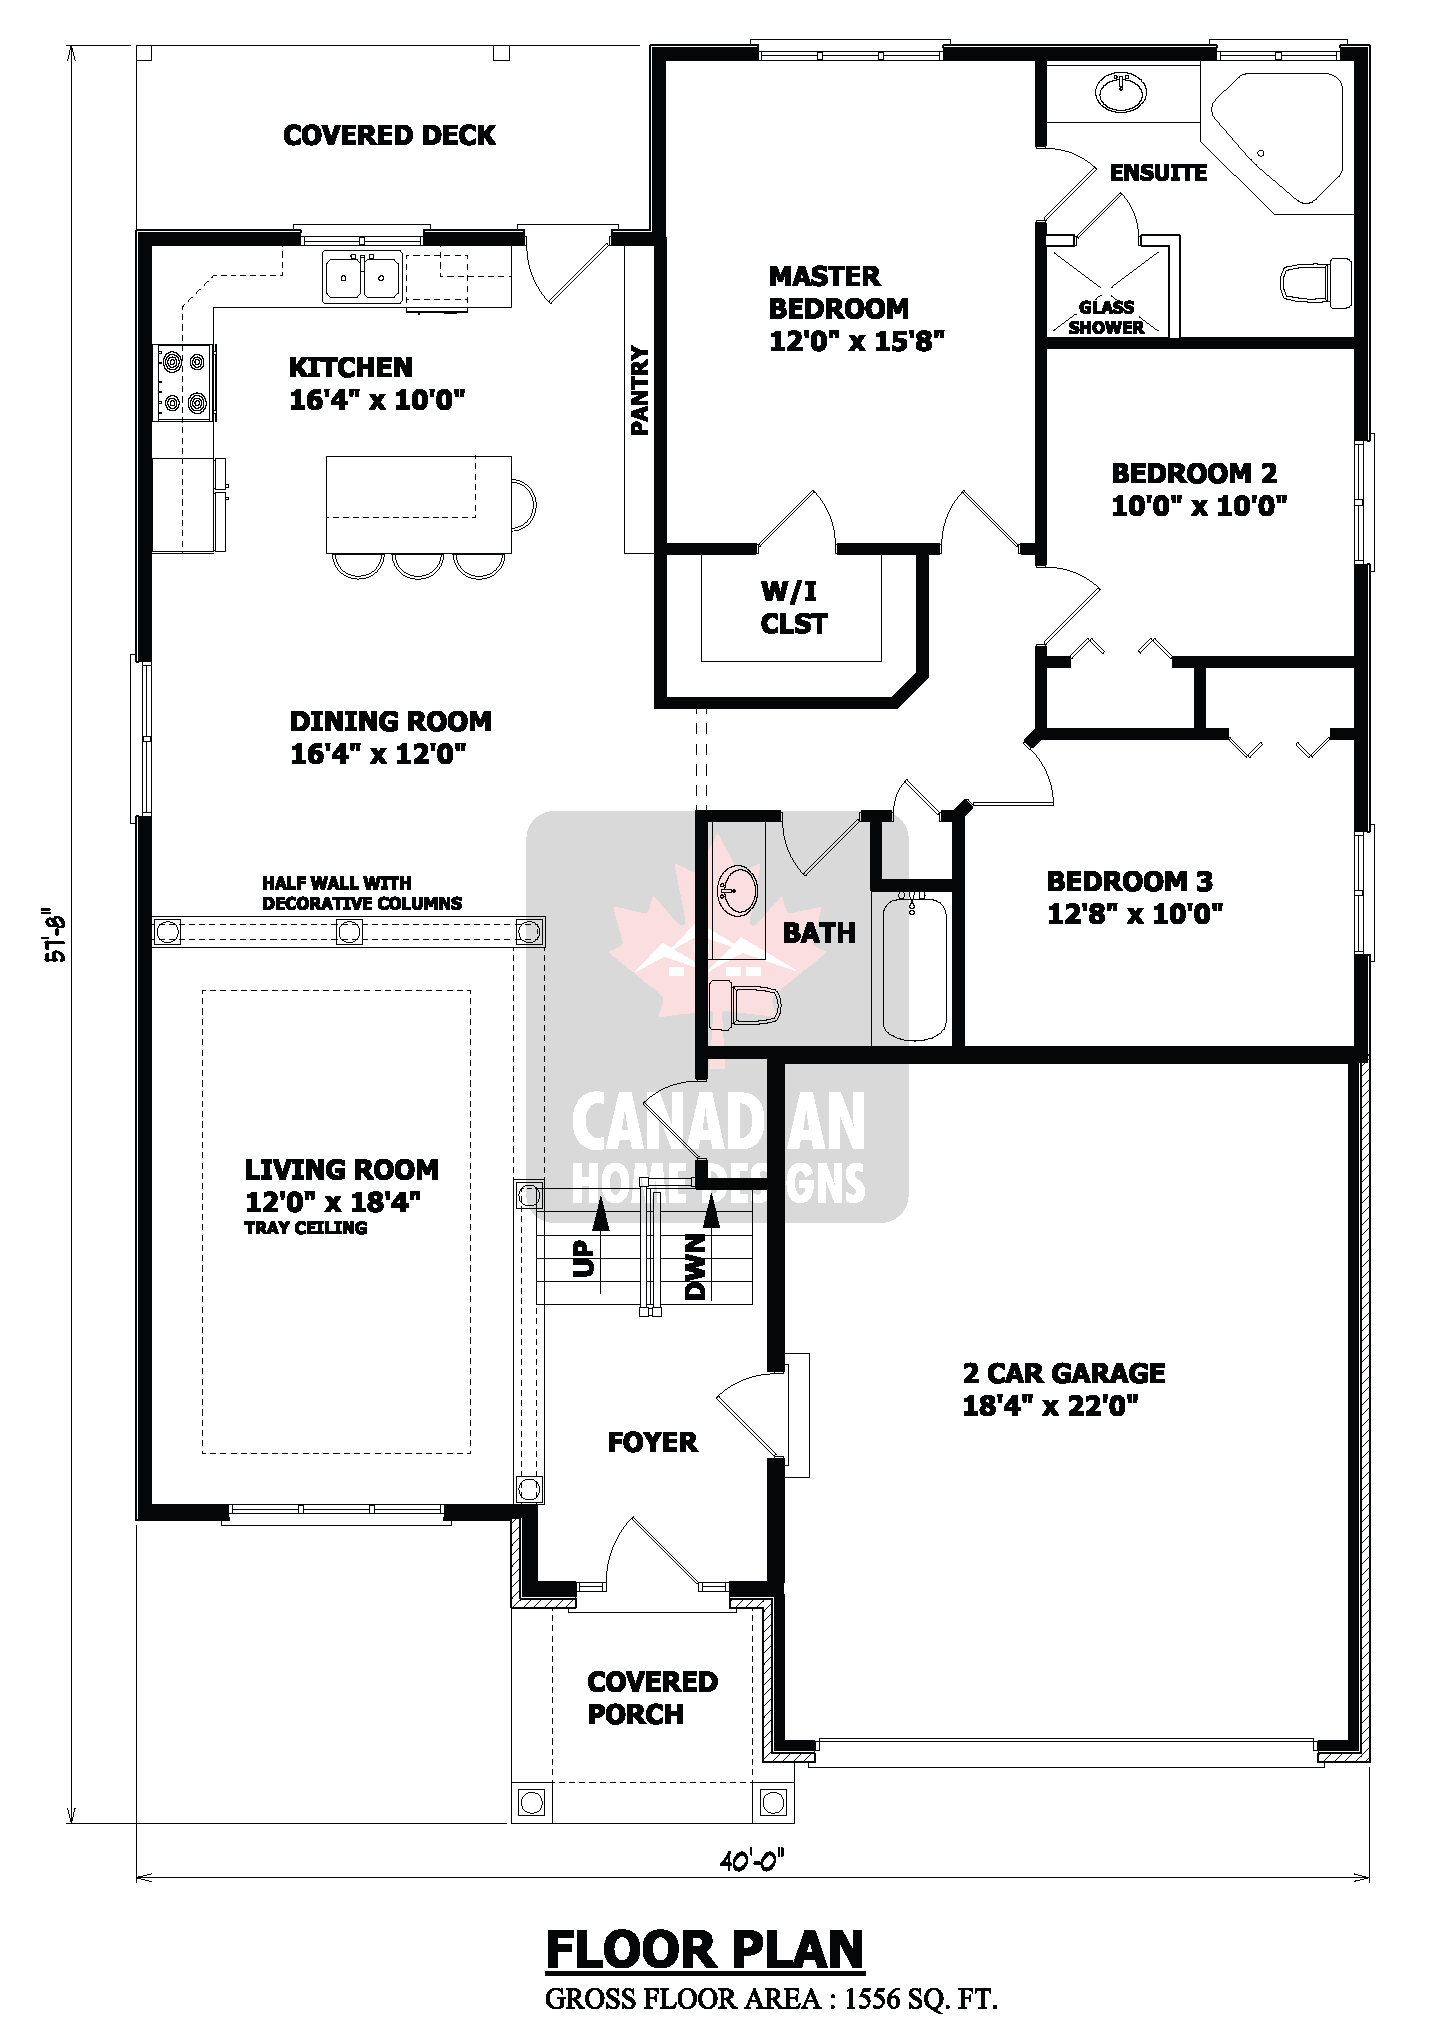 1000+ images about Plan Floor on Pinterest - ^